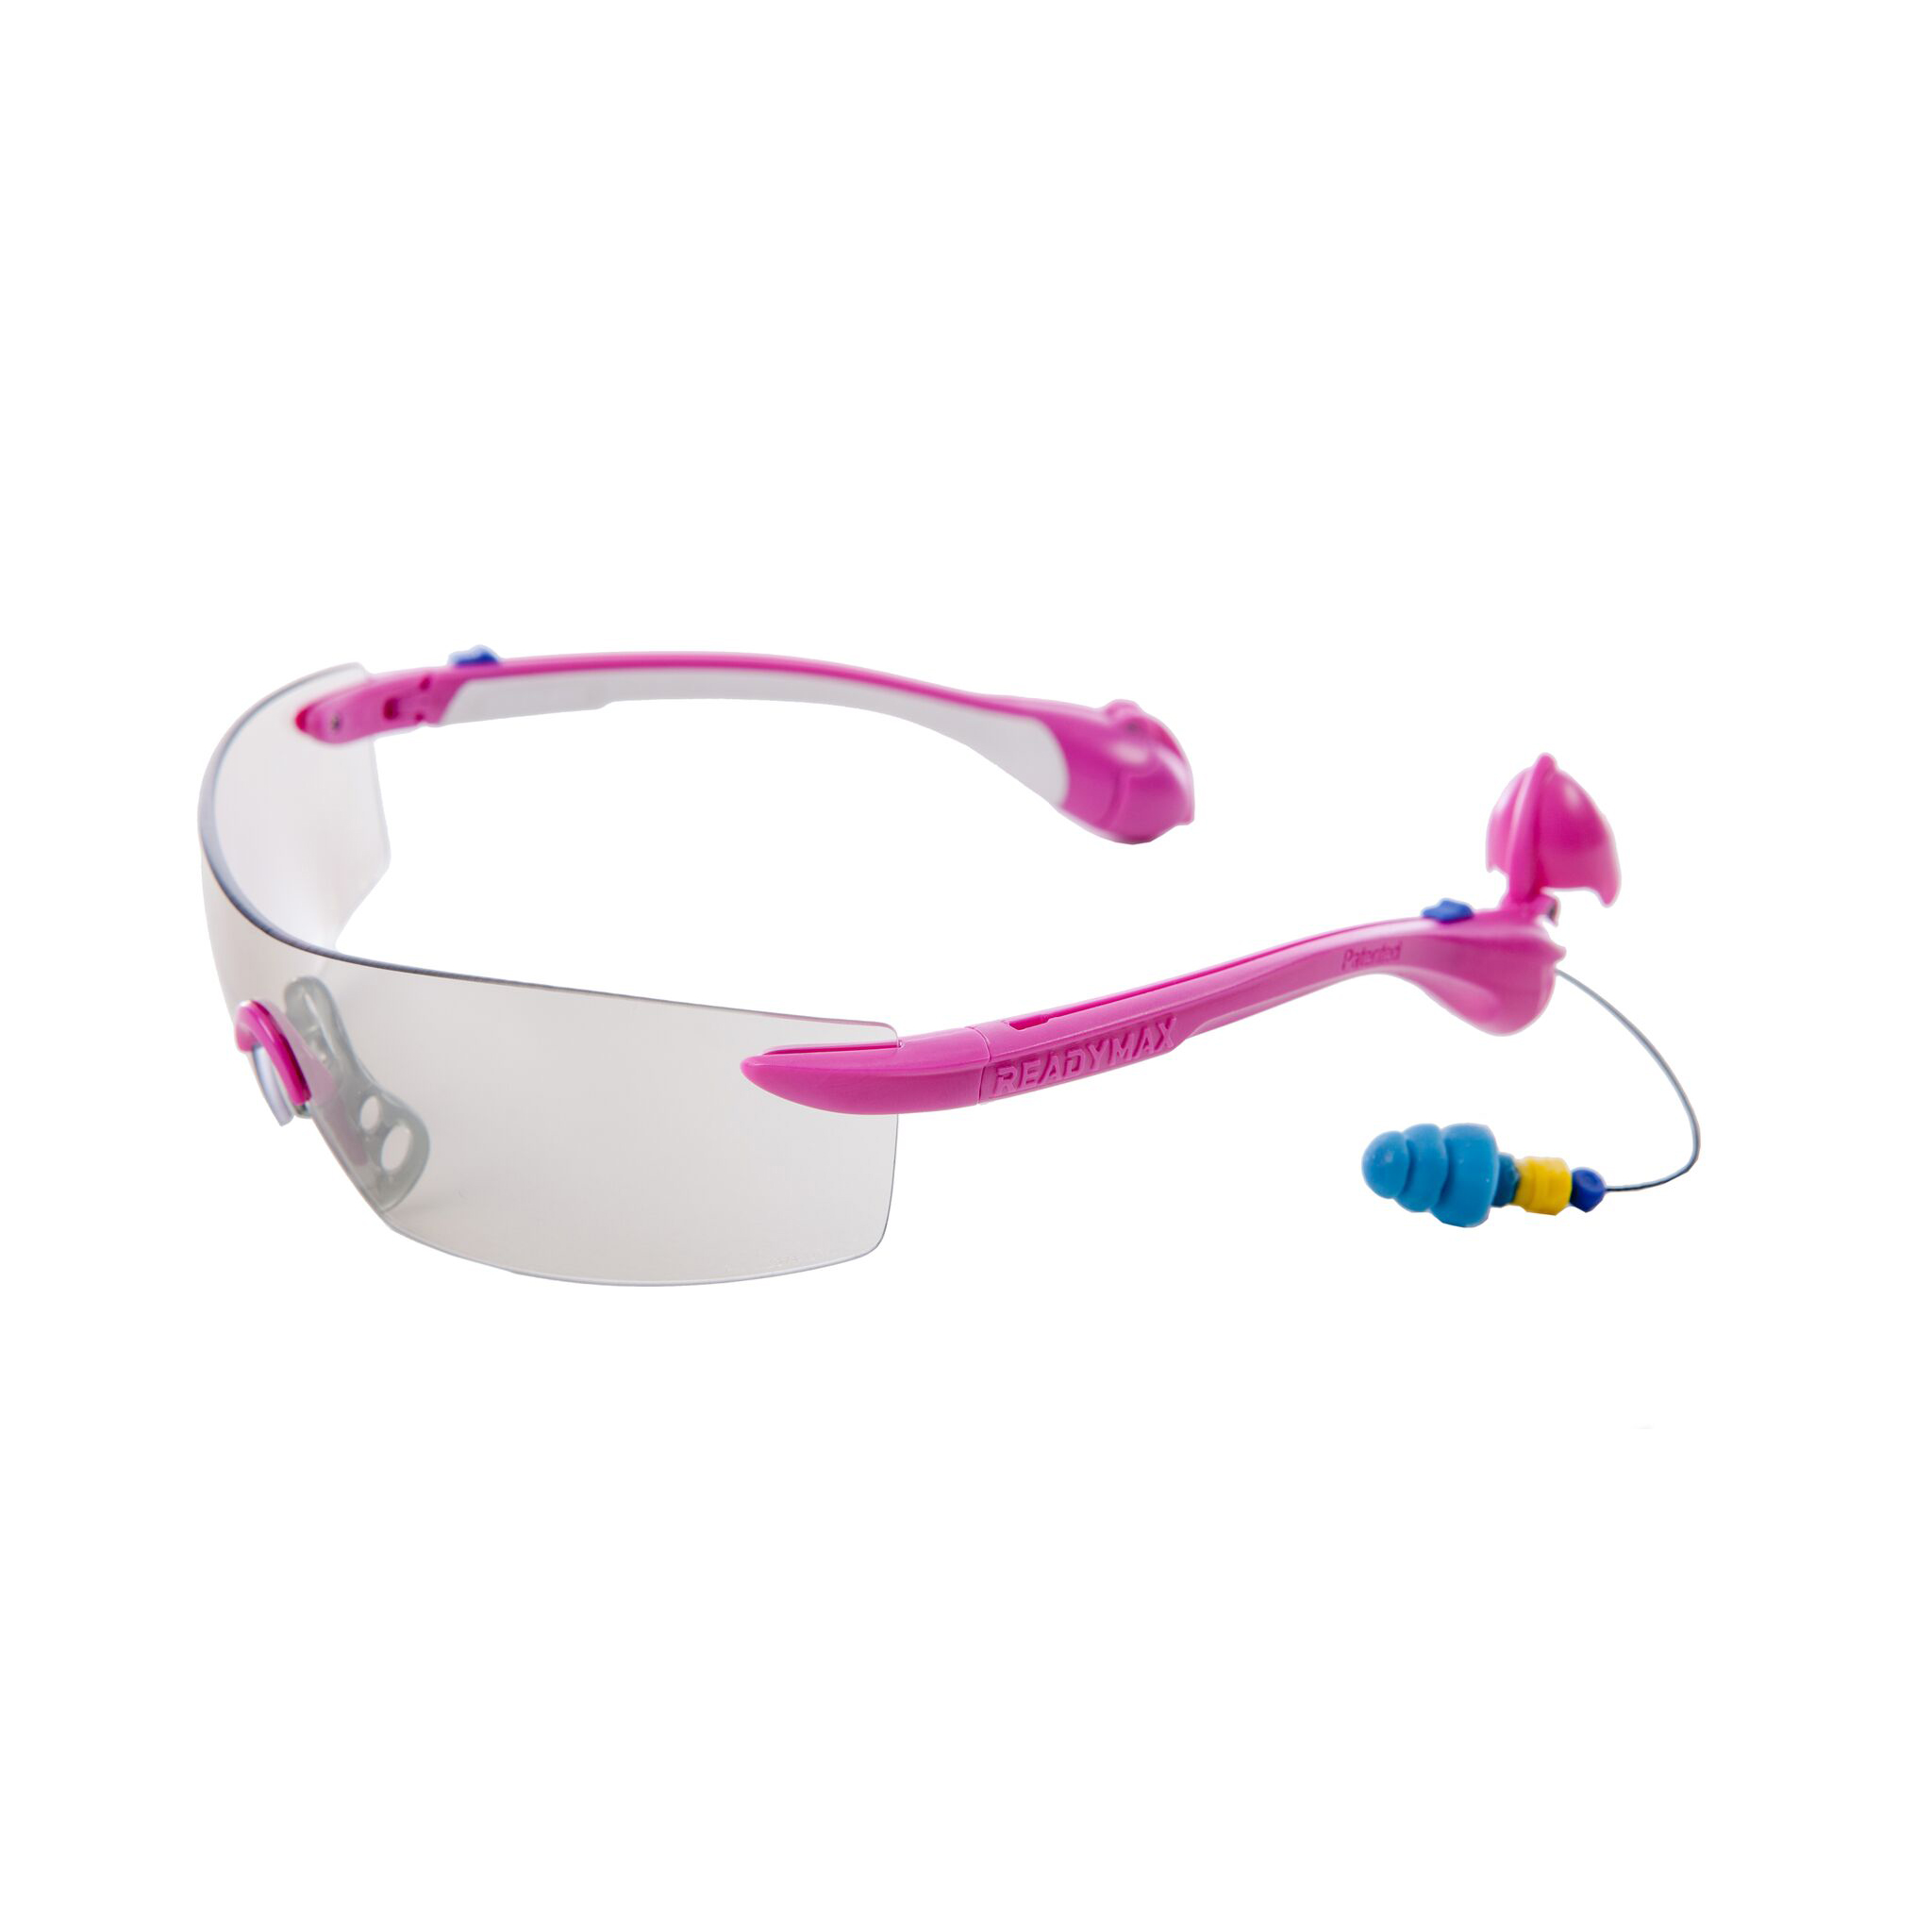 688946ef3a2 SoundShield Women s Sport Style Pink. Home   Safety ...